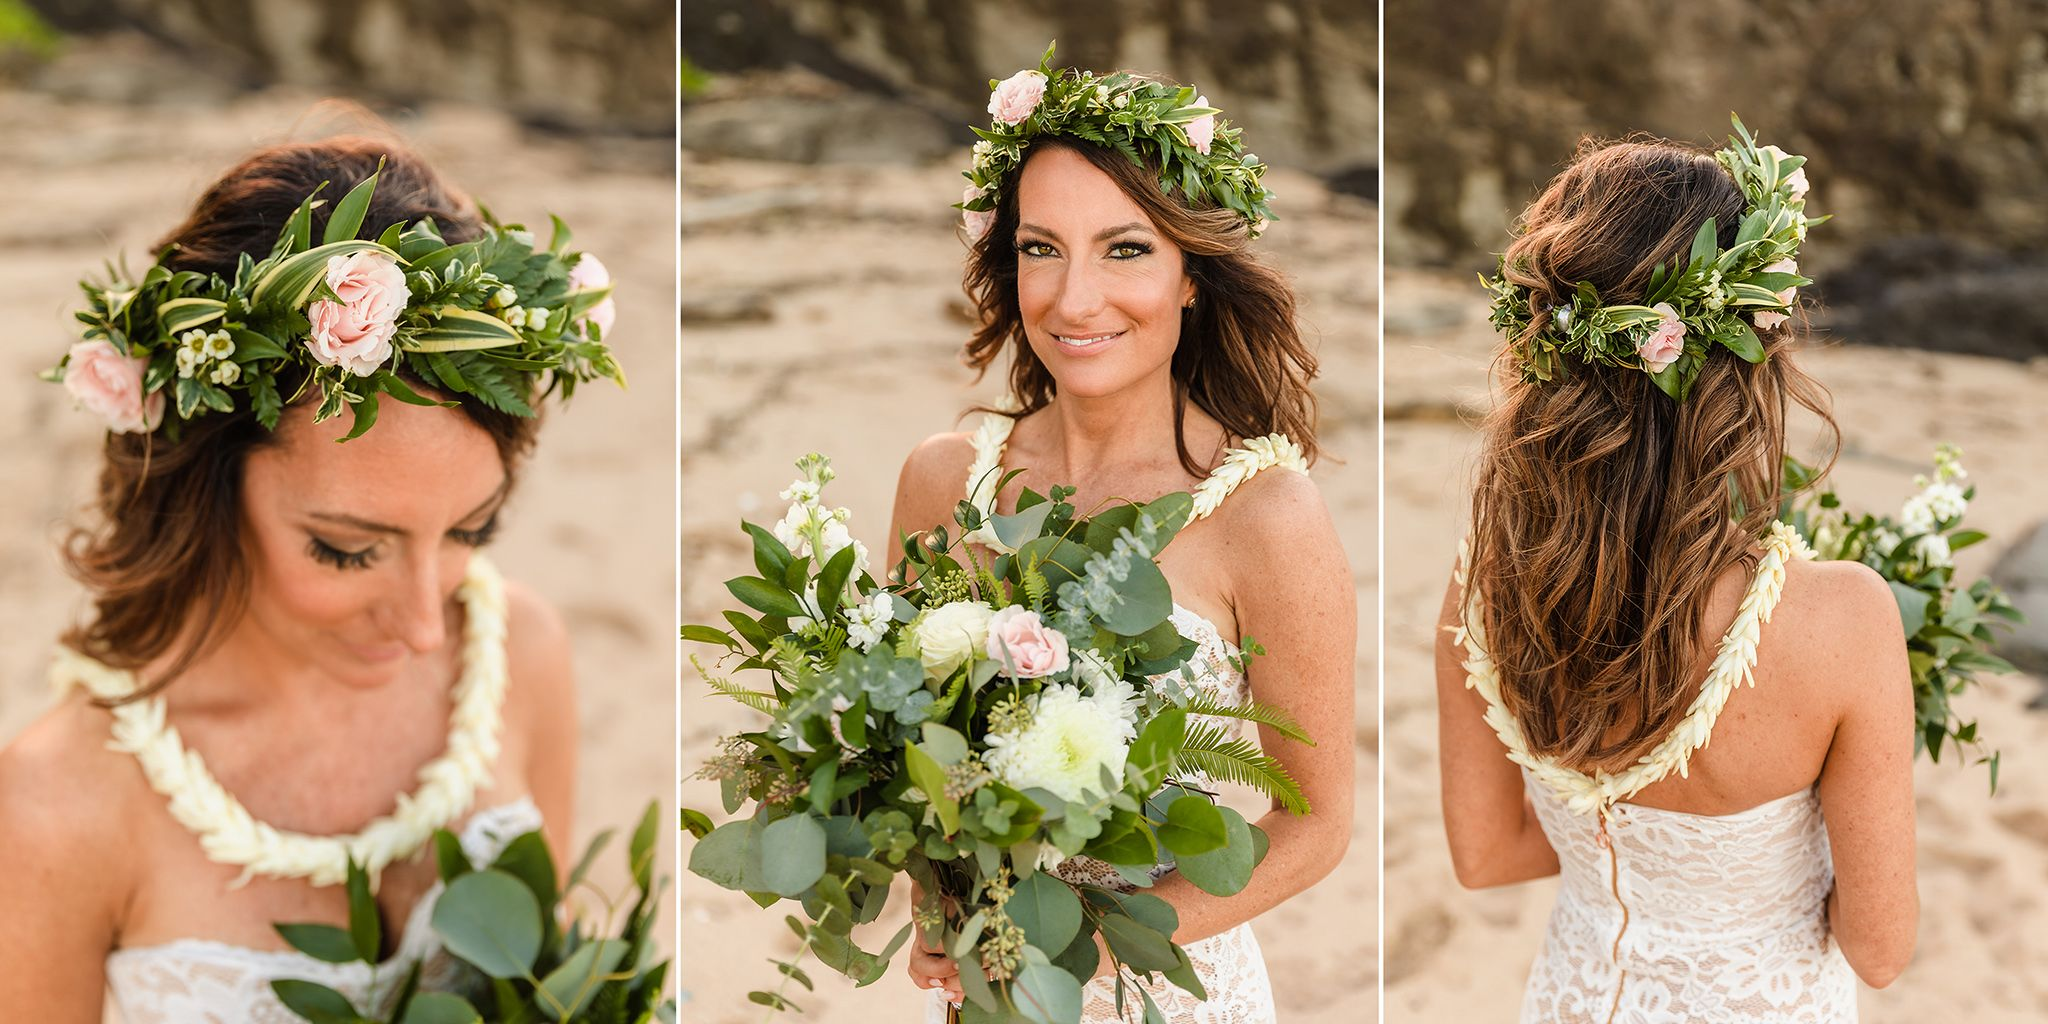 bride portrait and details, hair, haku, flowers